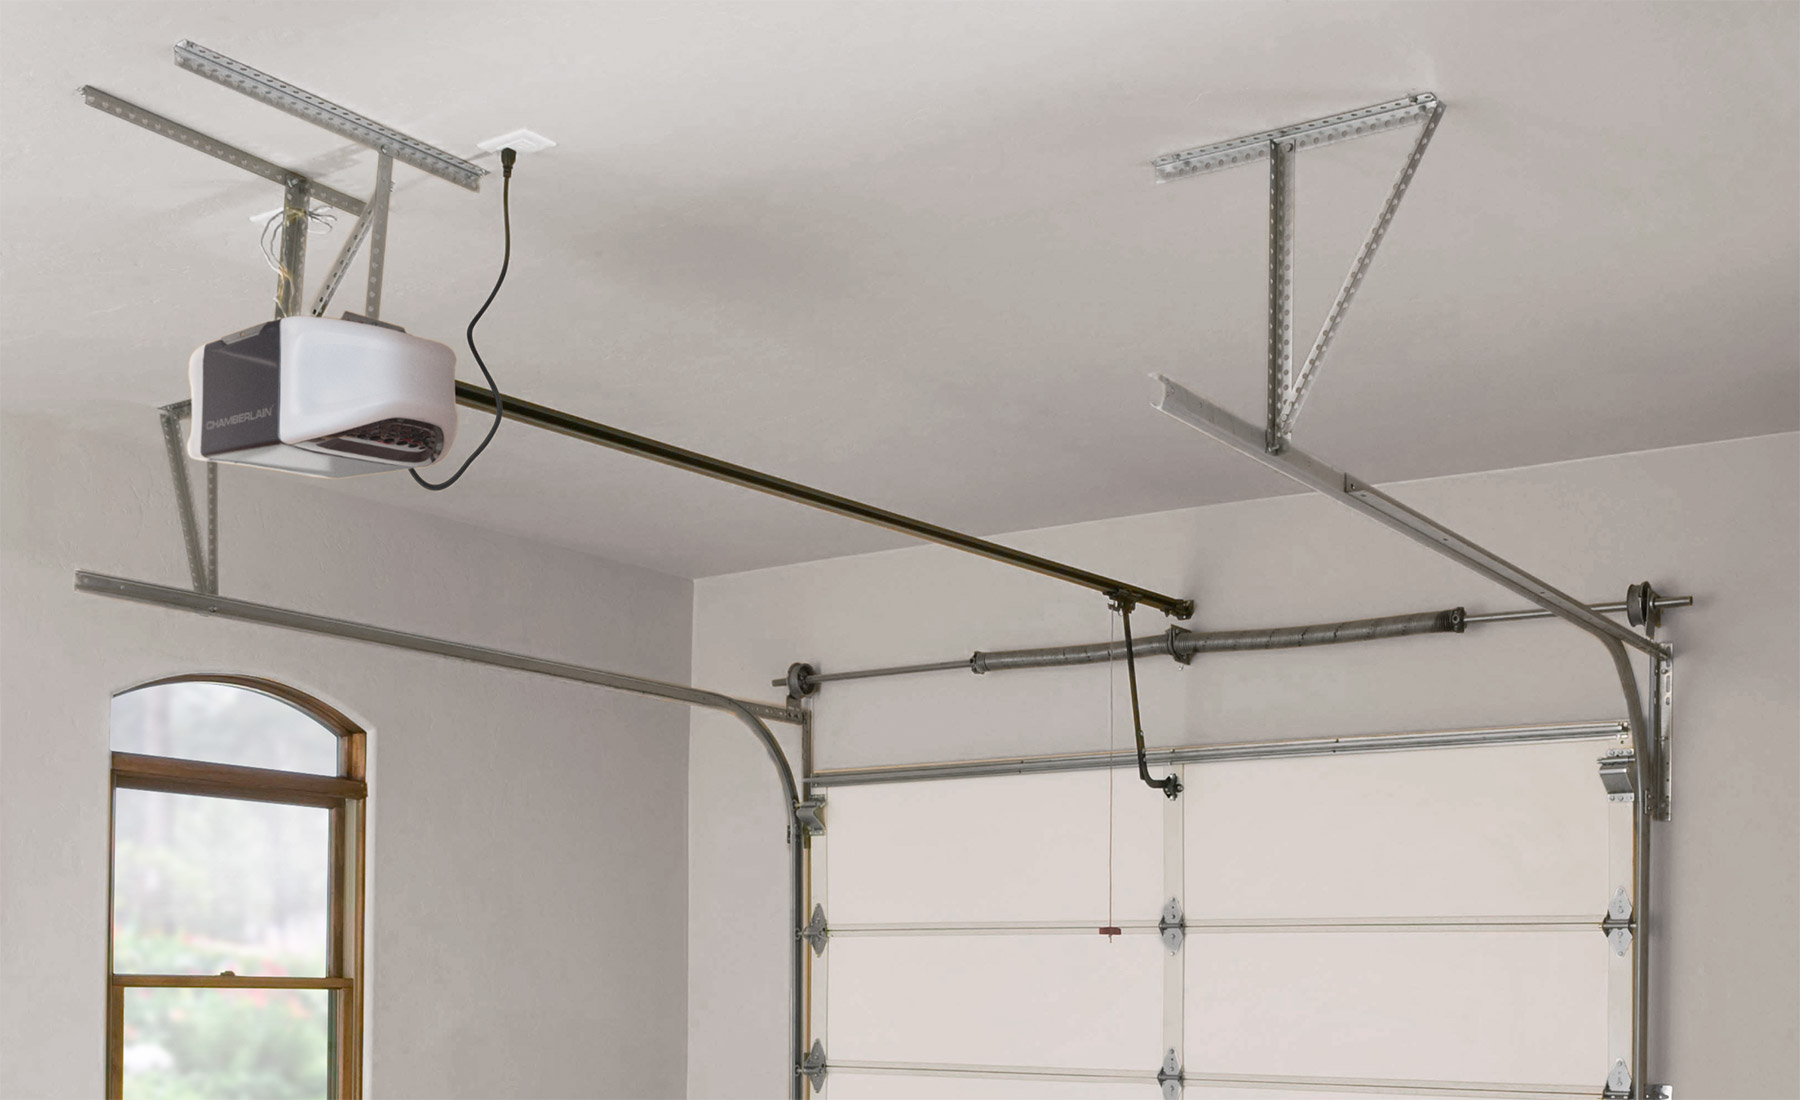 How to soundproof a garage door hush city soundproofing for How to select a garage door opener